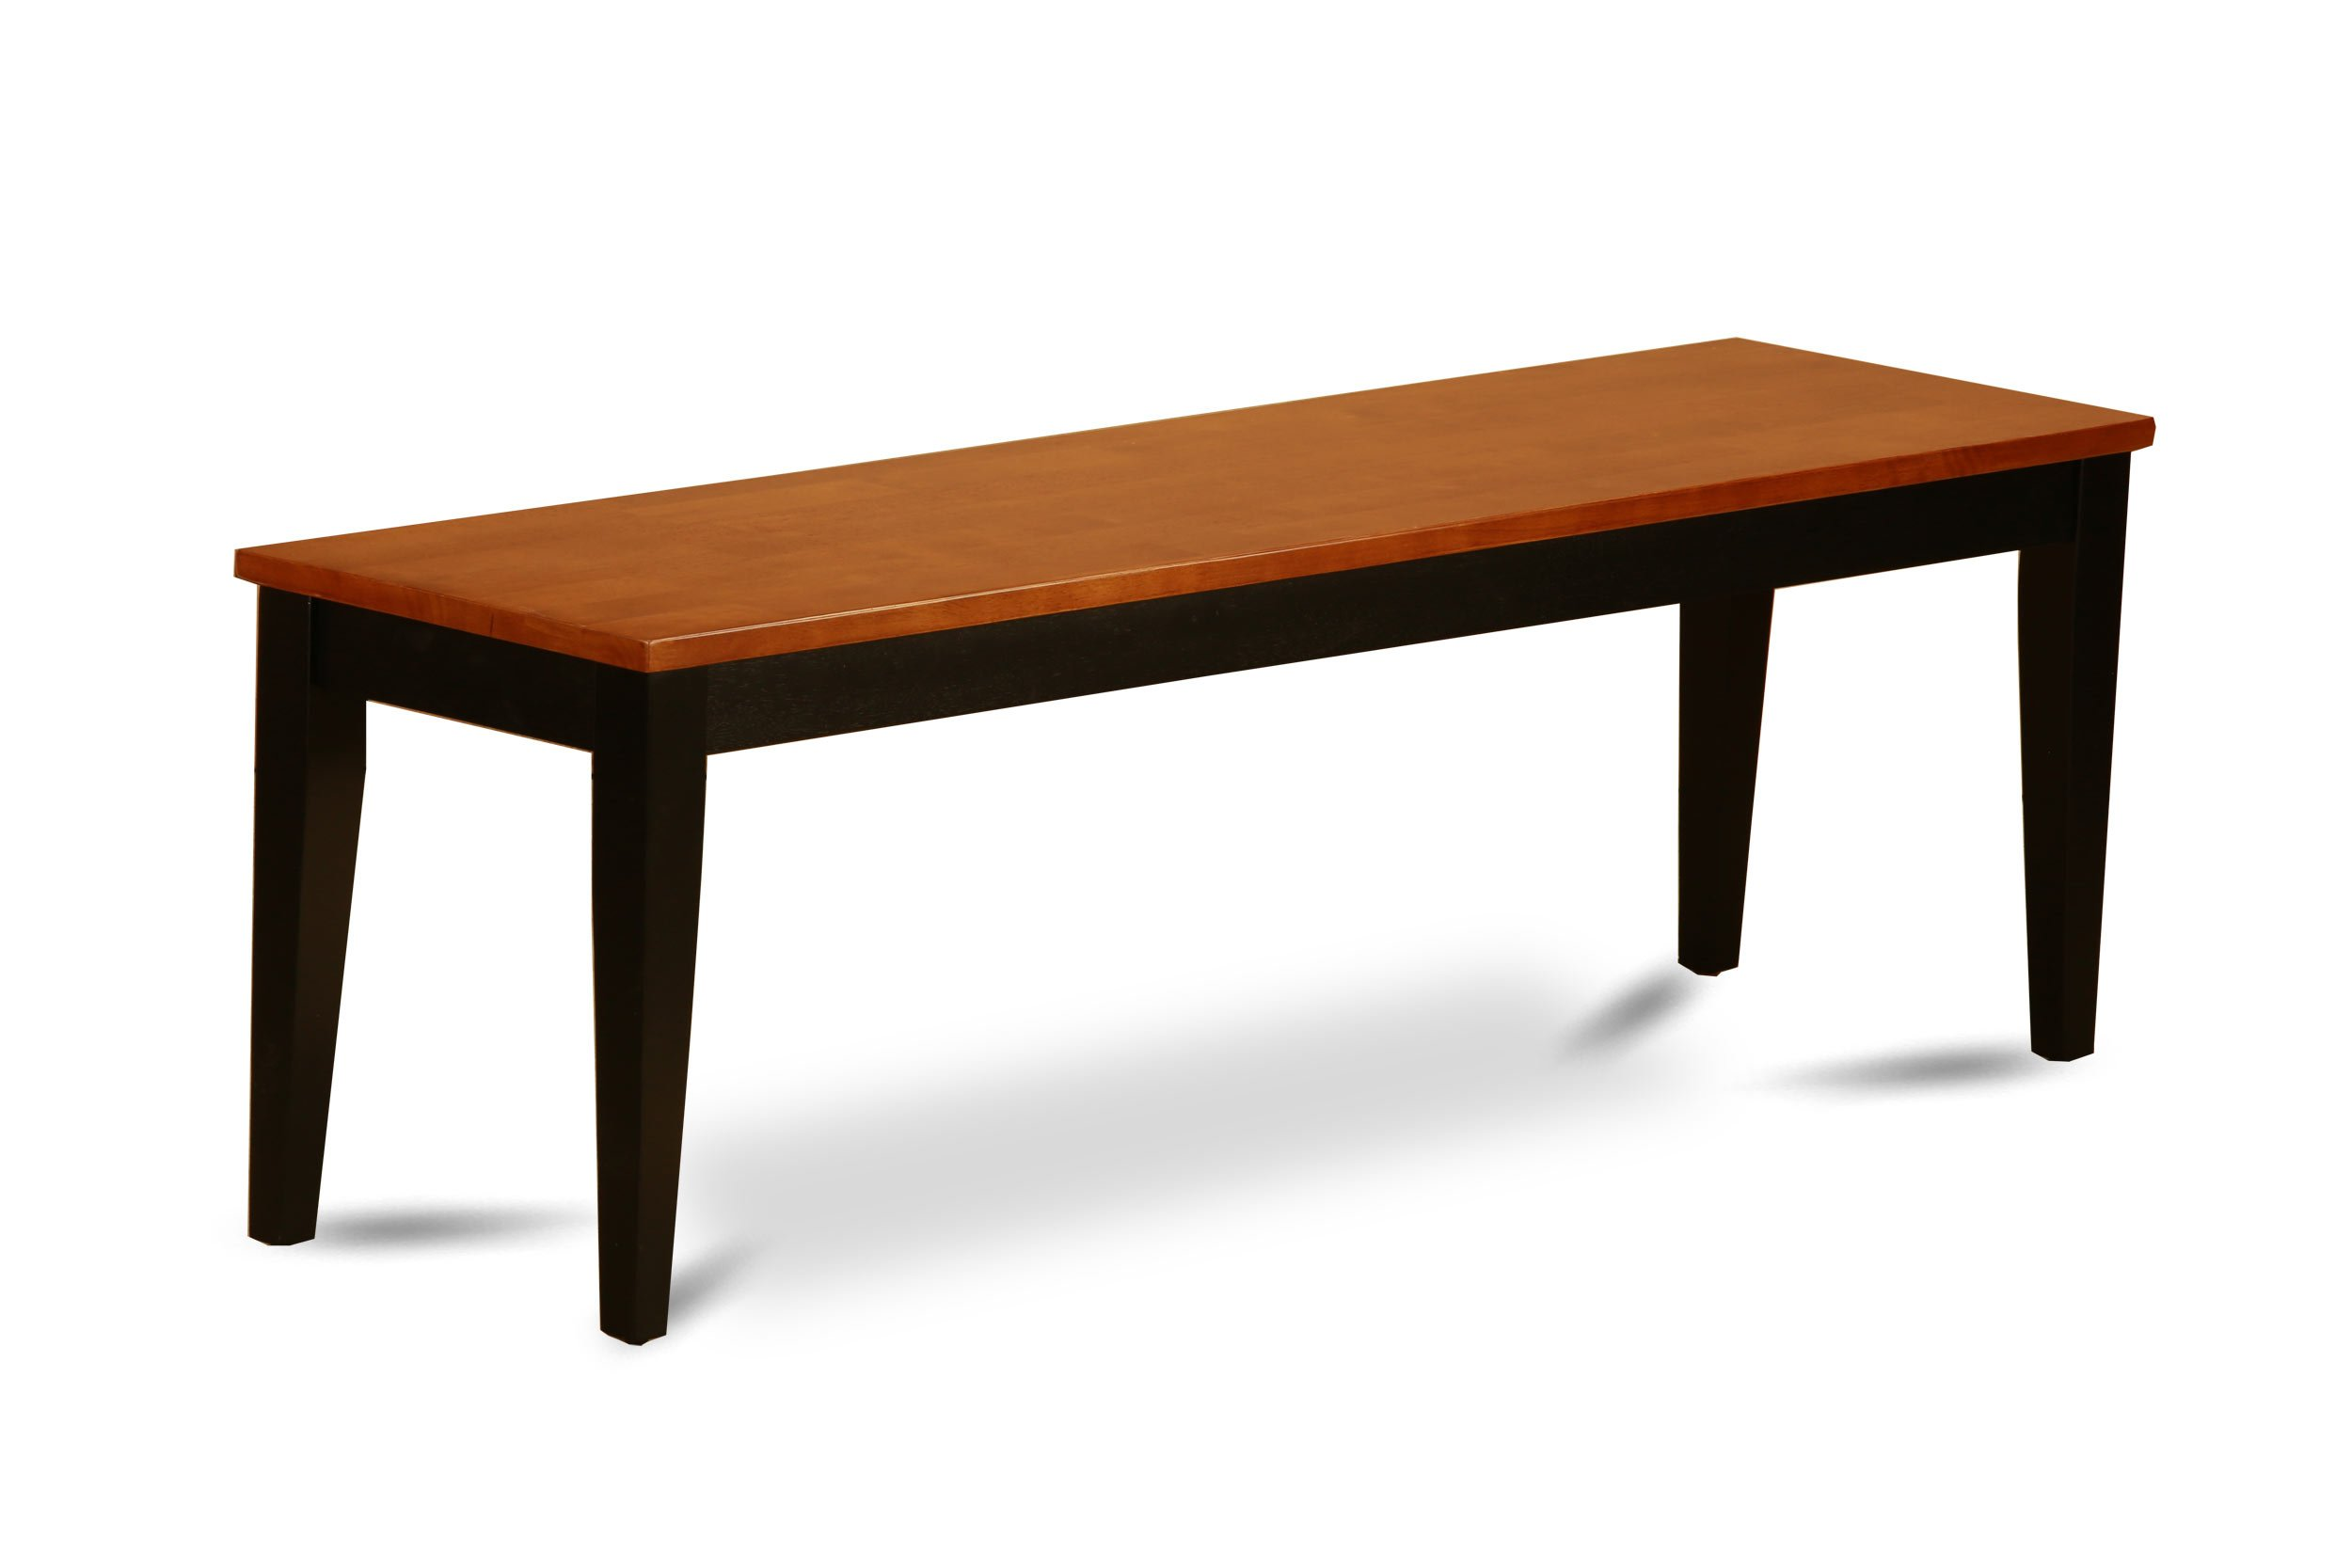 East West Furniture Dining Bench with Wood Seat, Black/Cherry Finish by East West Furniture